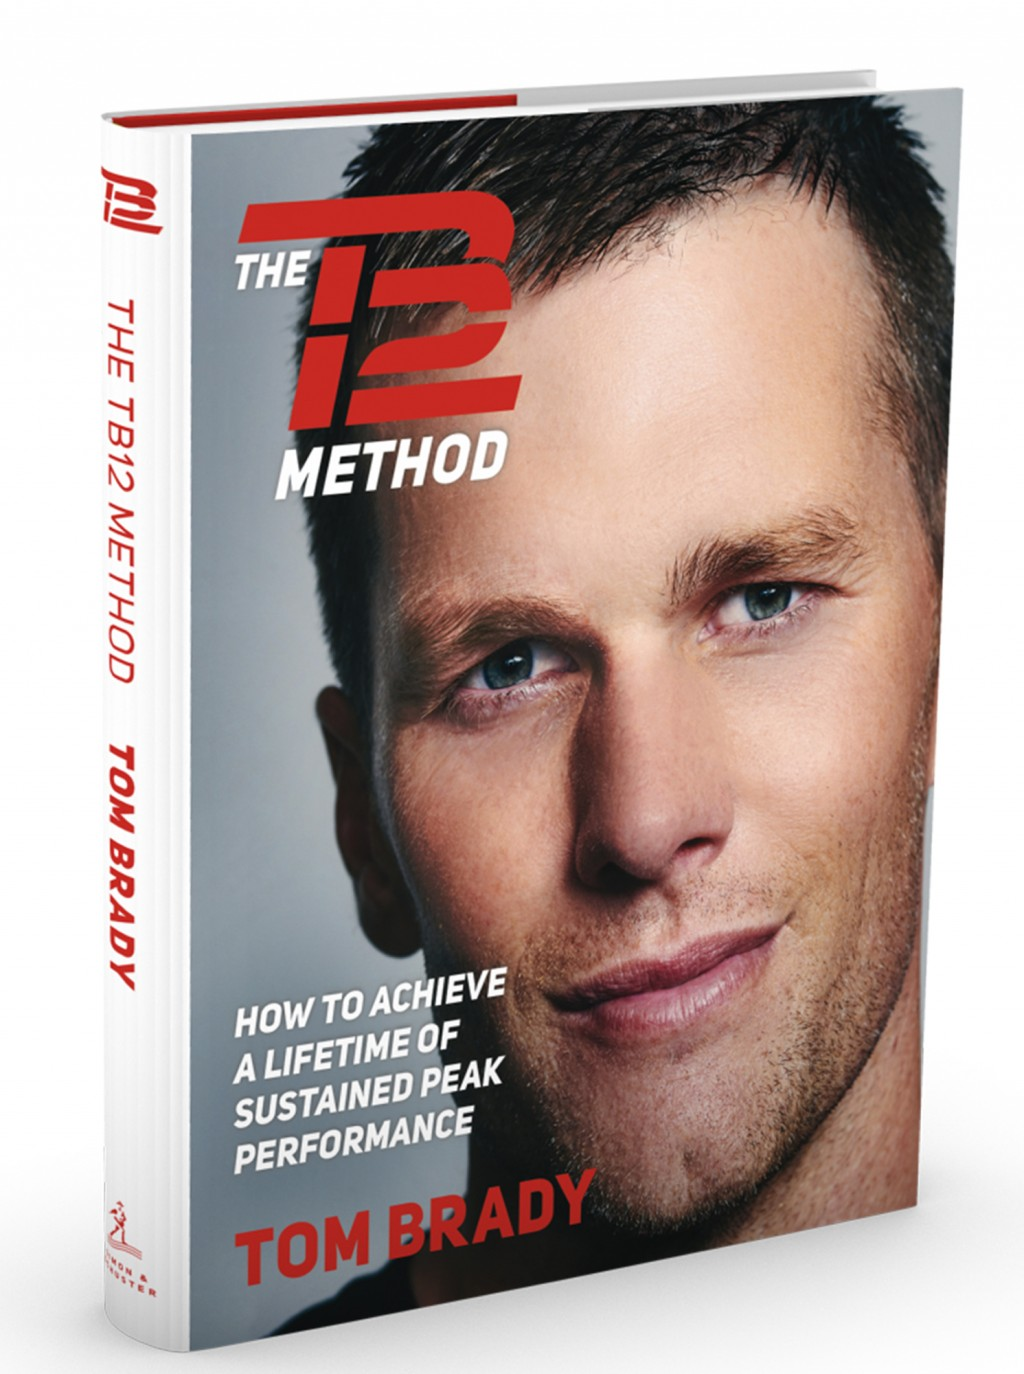 """This undated photo provided by TB12 shows the cover of Tom Brady's book """"The TB12 Method: How to Achieve a Lifetime of Sustained Peak Performance."""" Br..."""